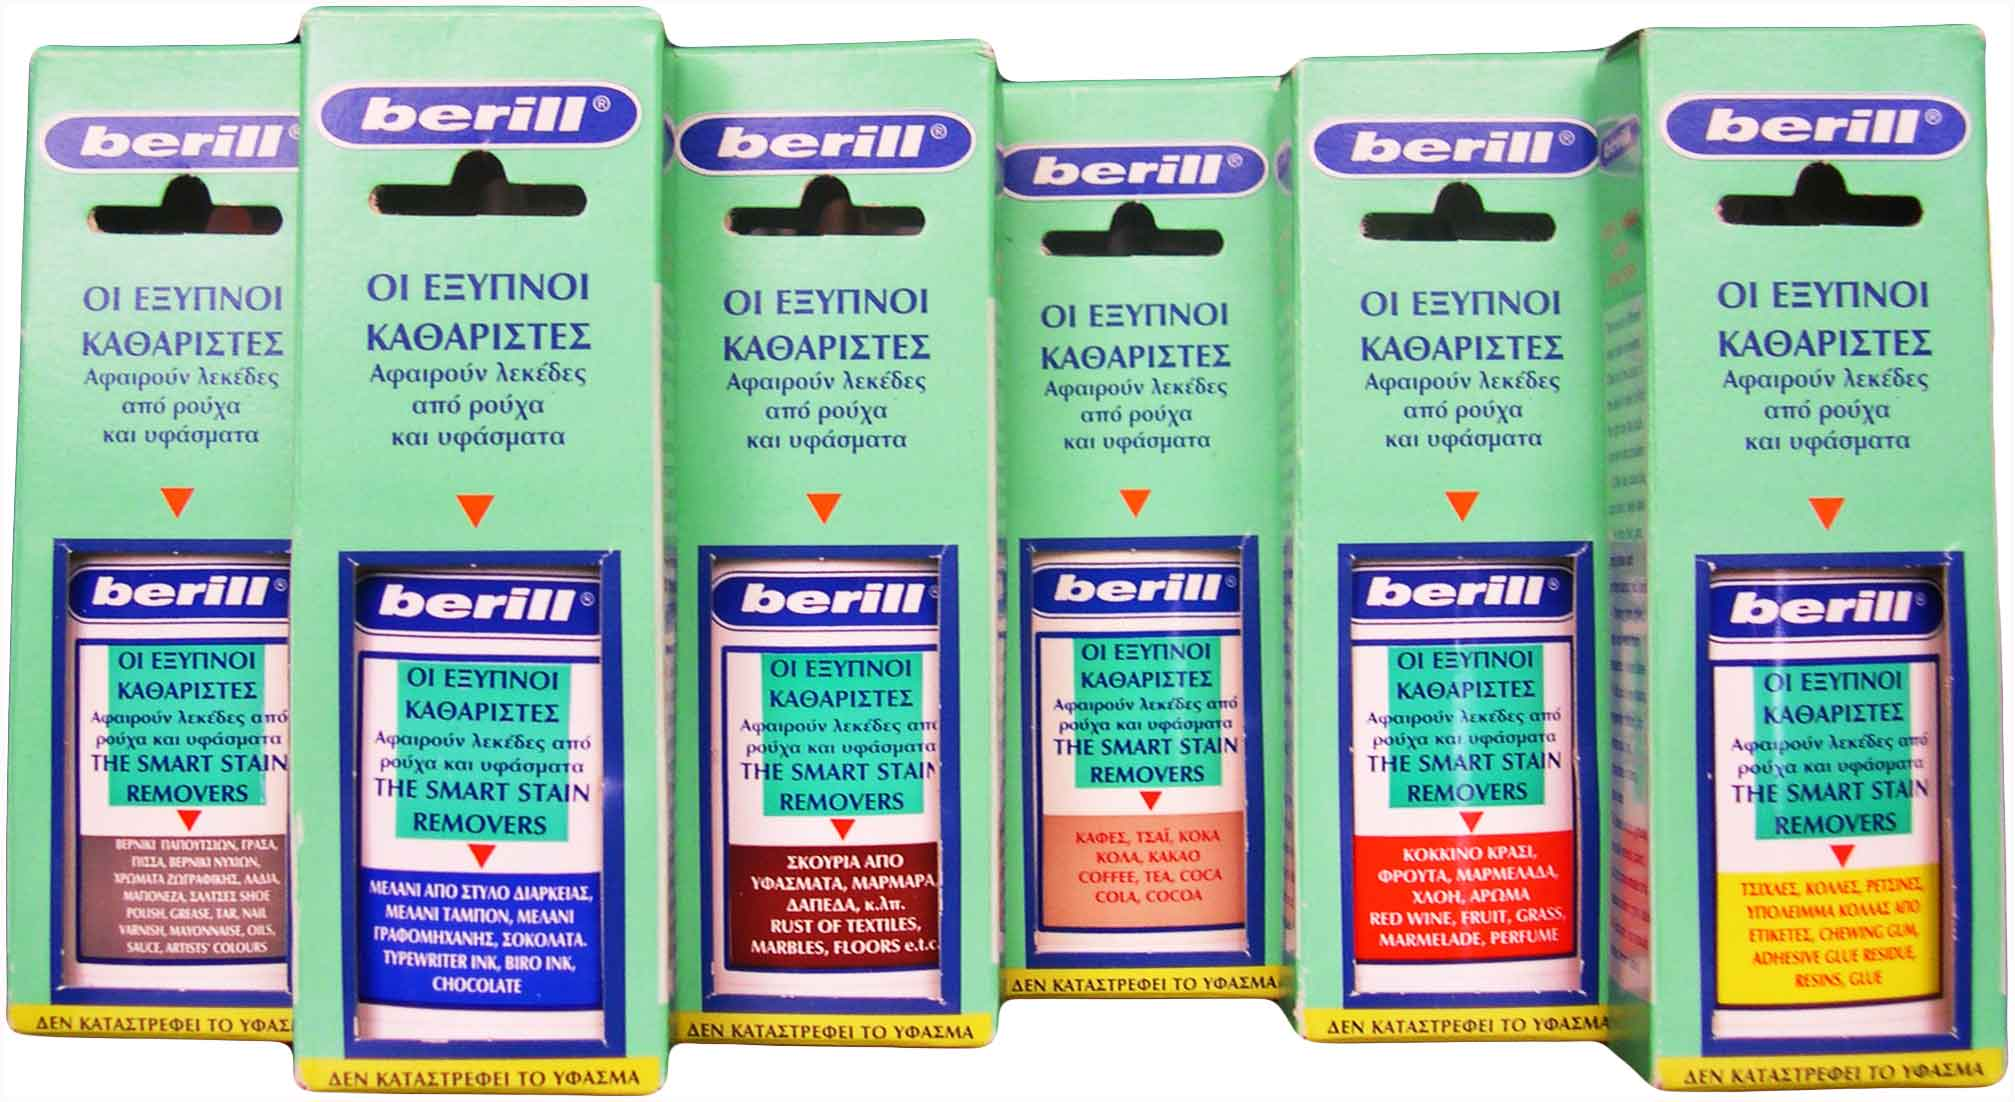 berill-stain removers-σκόνη & υγρό